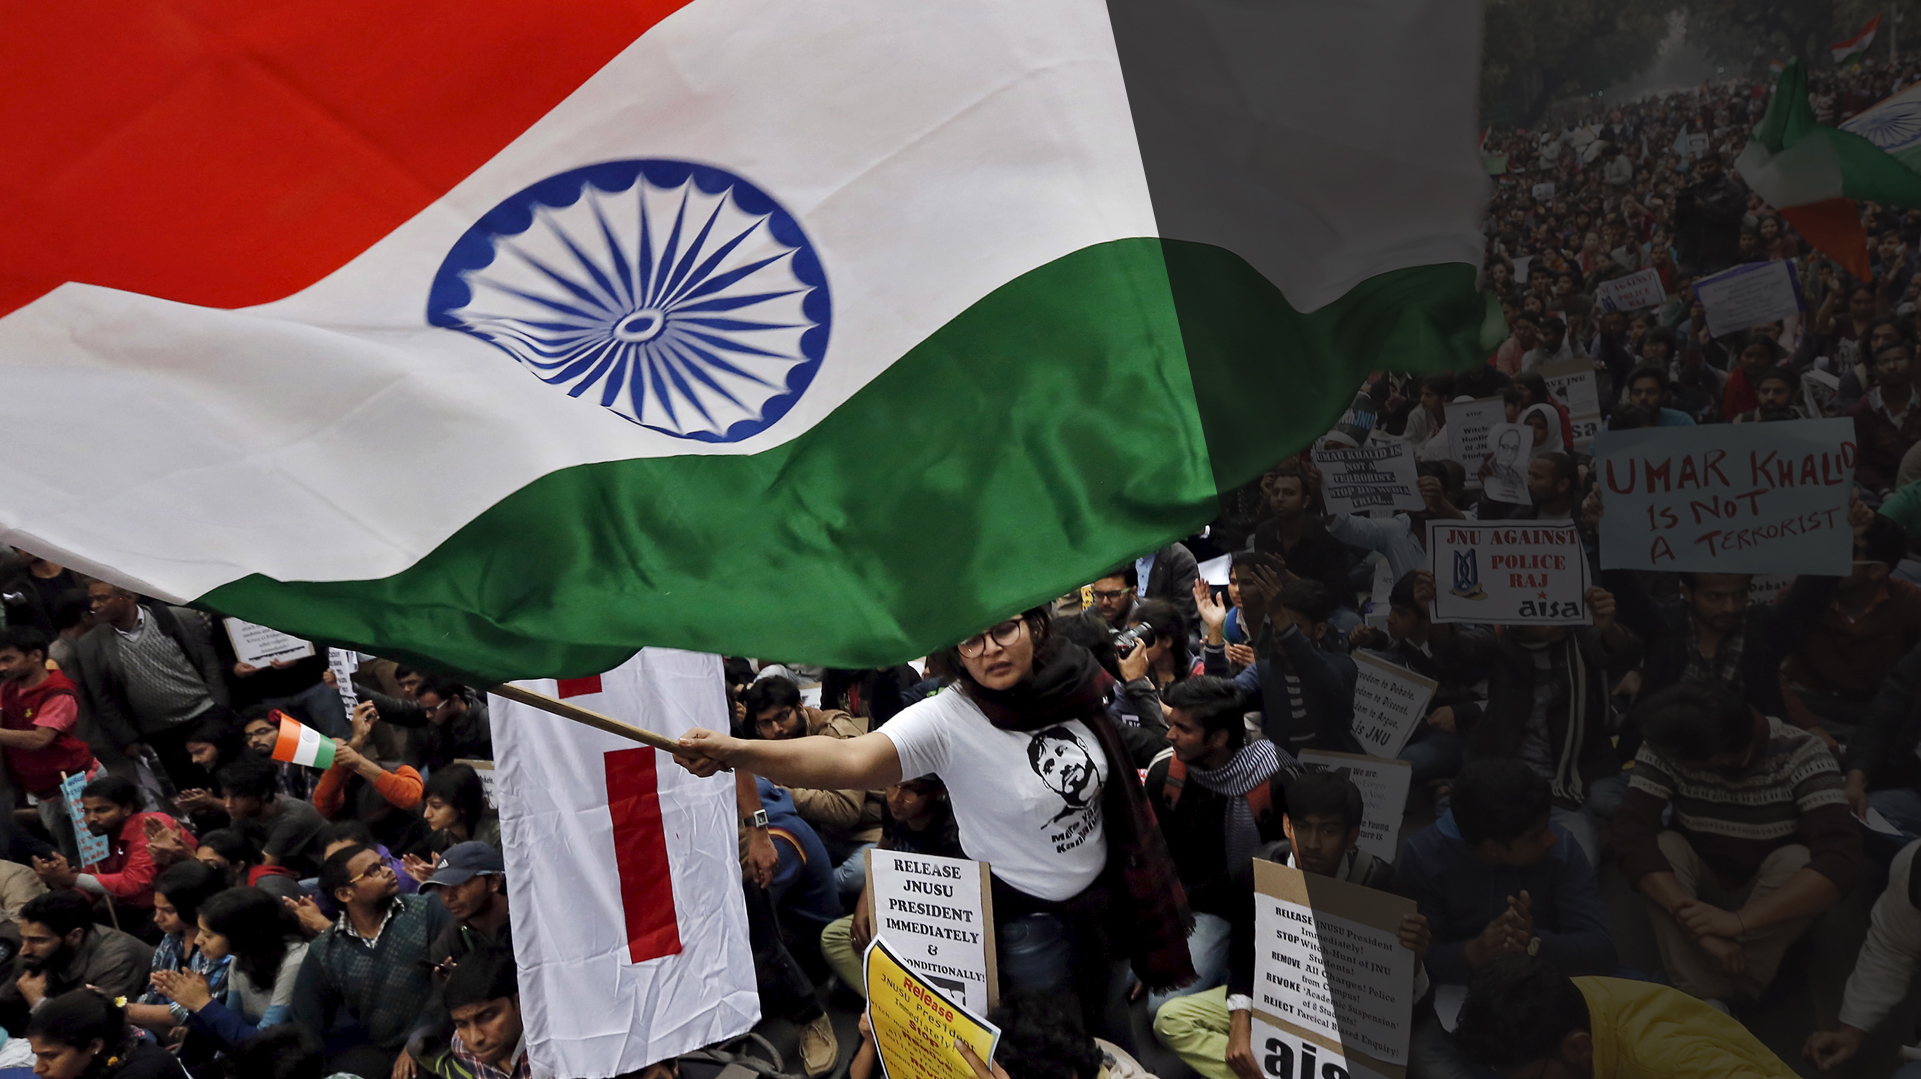 Dissent gagged: Ambiguity of free speech laws in India